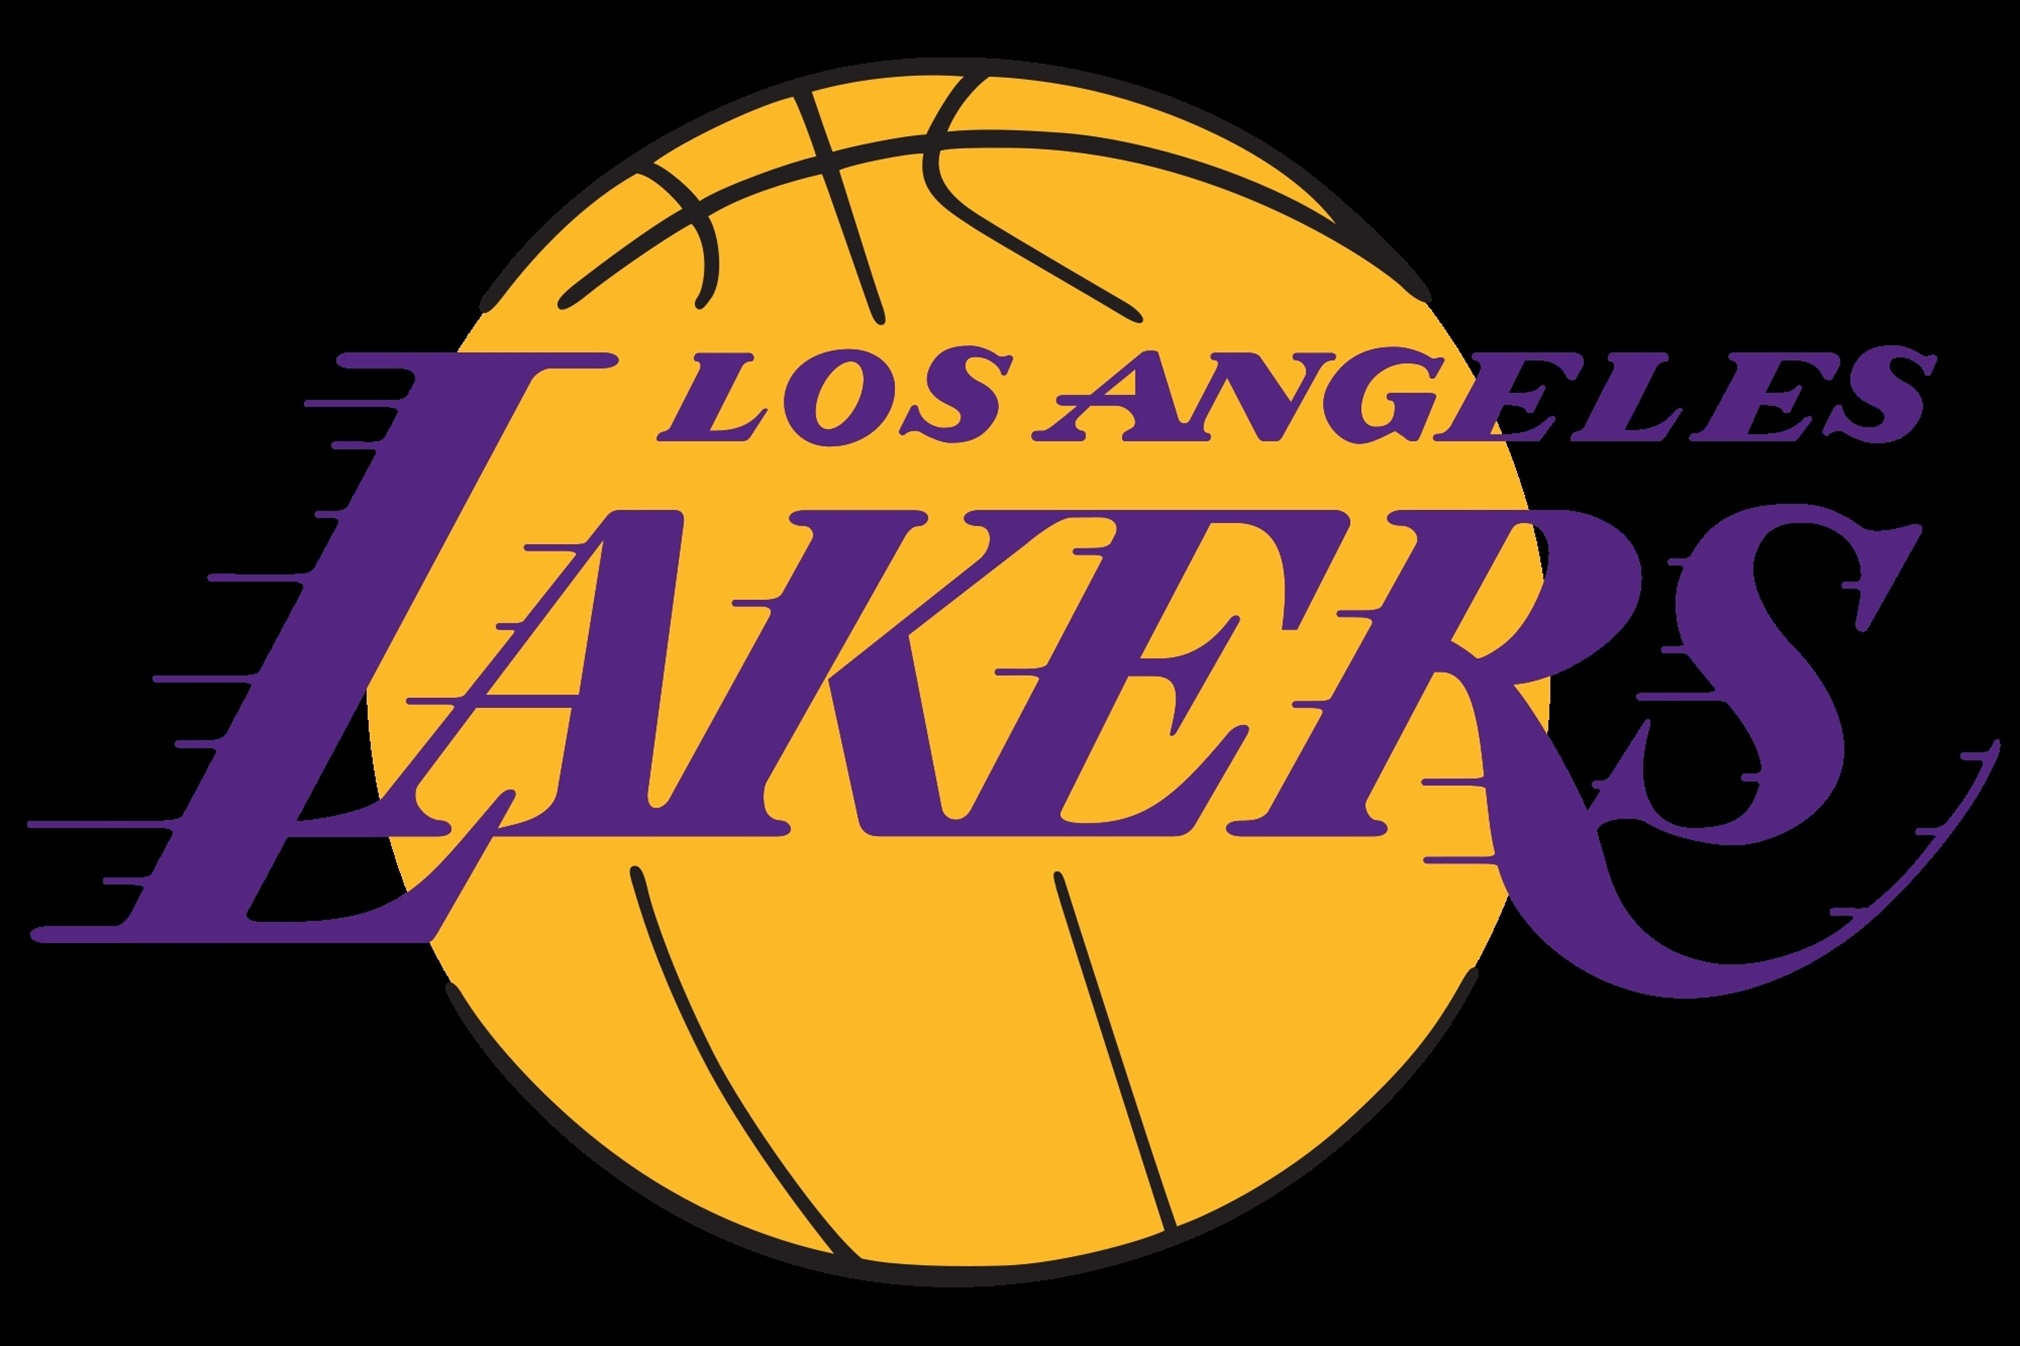 Golden State Warriors Wallpaper Hd Los Angeles Lakers Announce 2017 18 Schedule Latf Usa